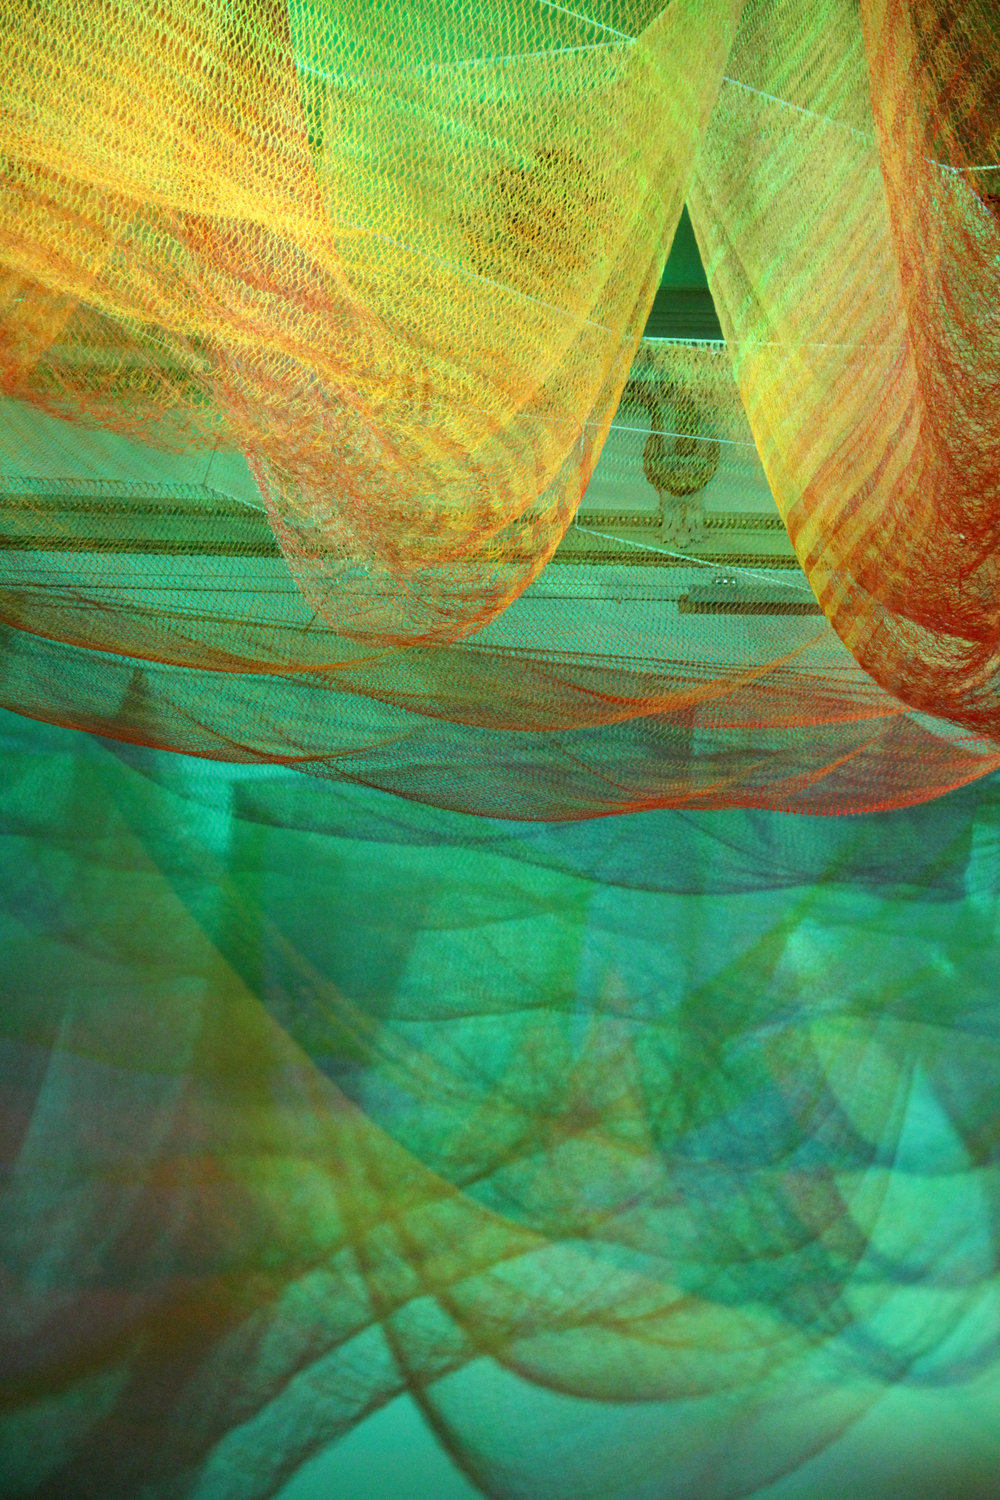 DC_Echelman_PhotoBrian Stacy_267_e.jpg